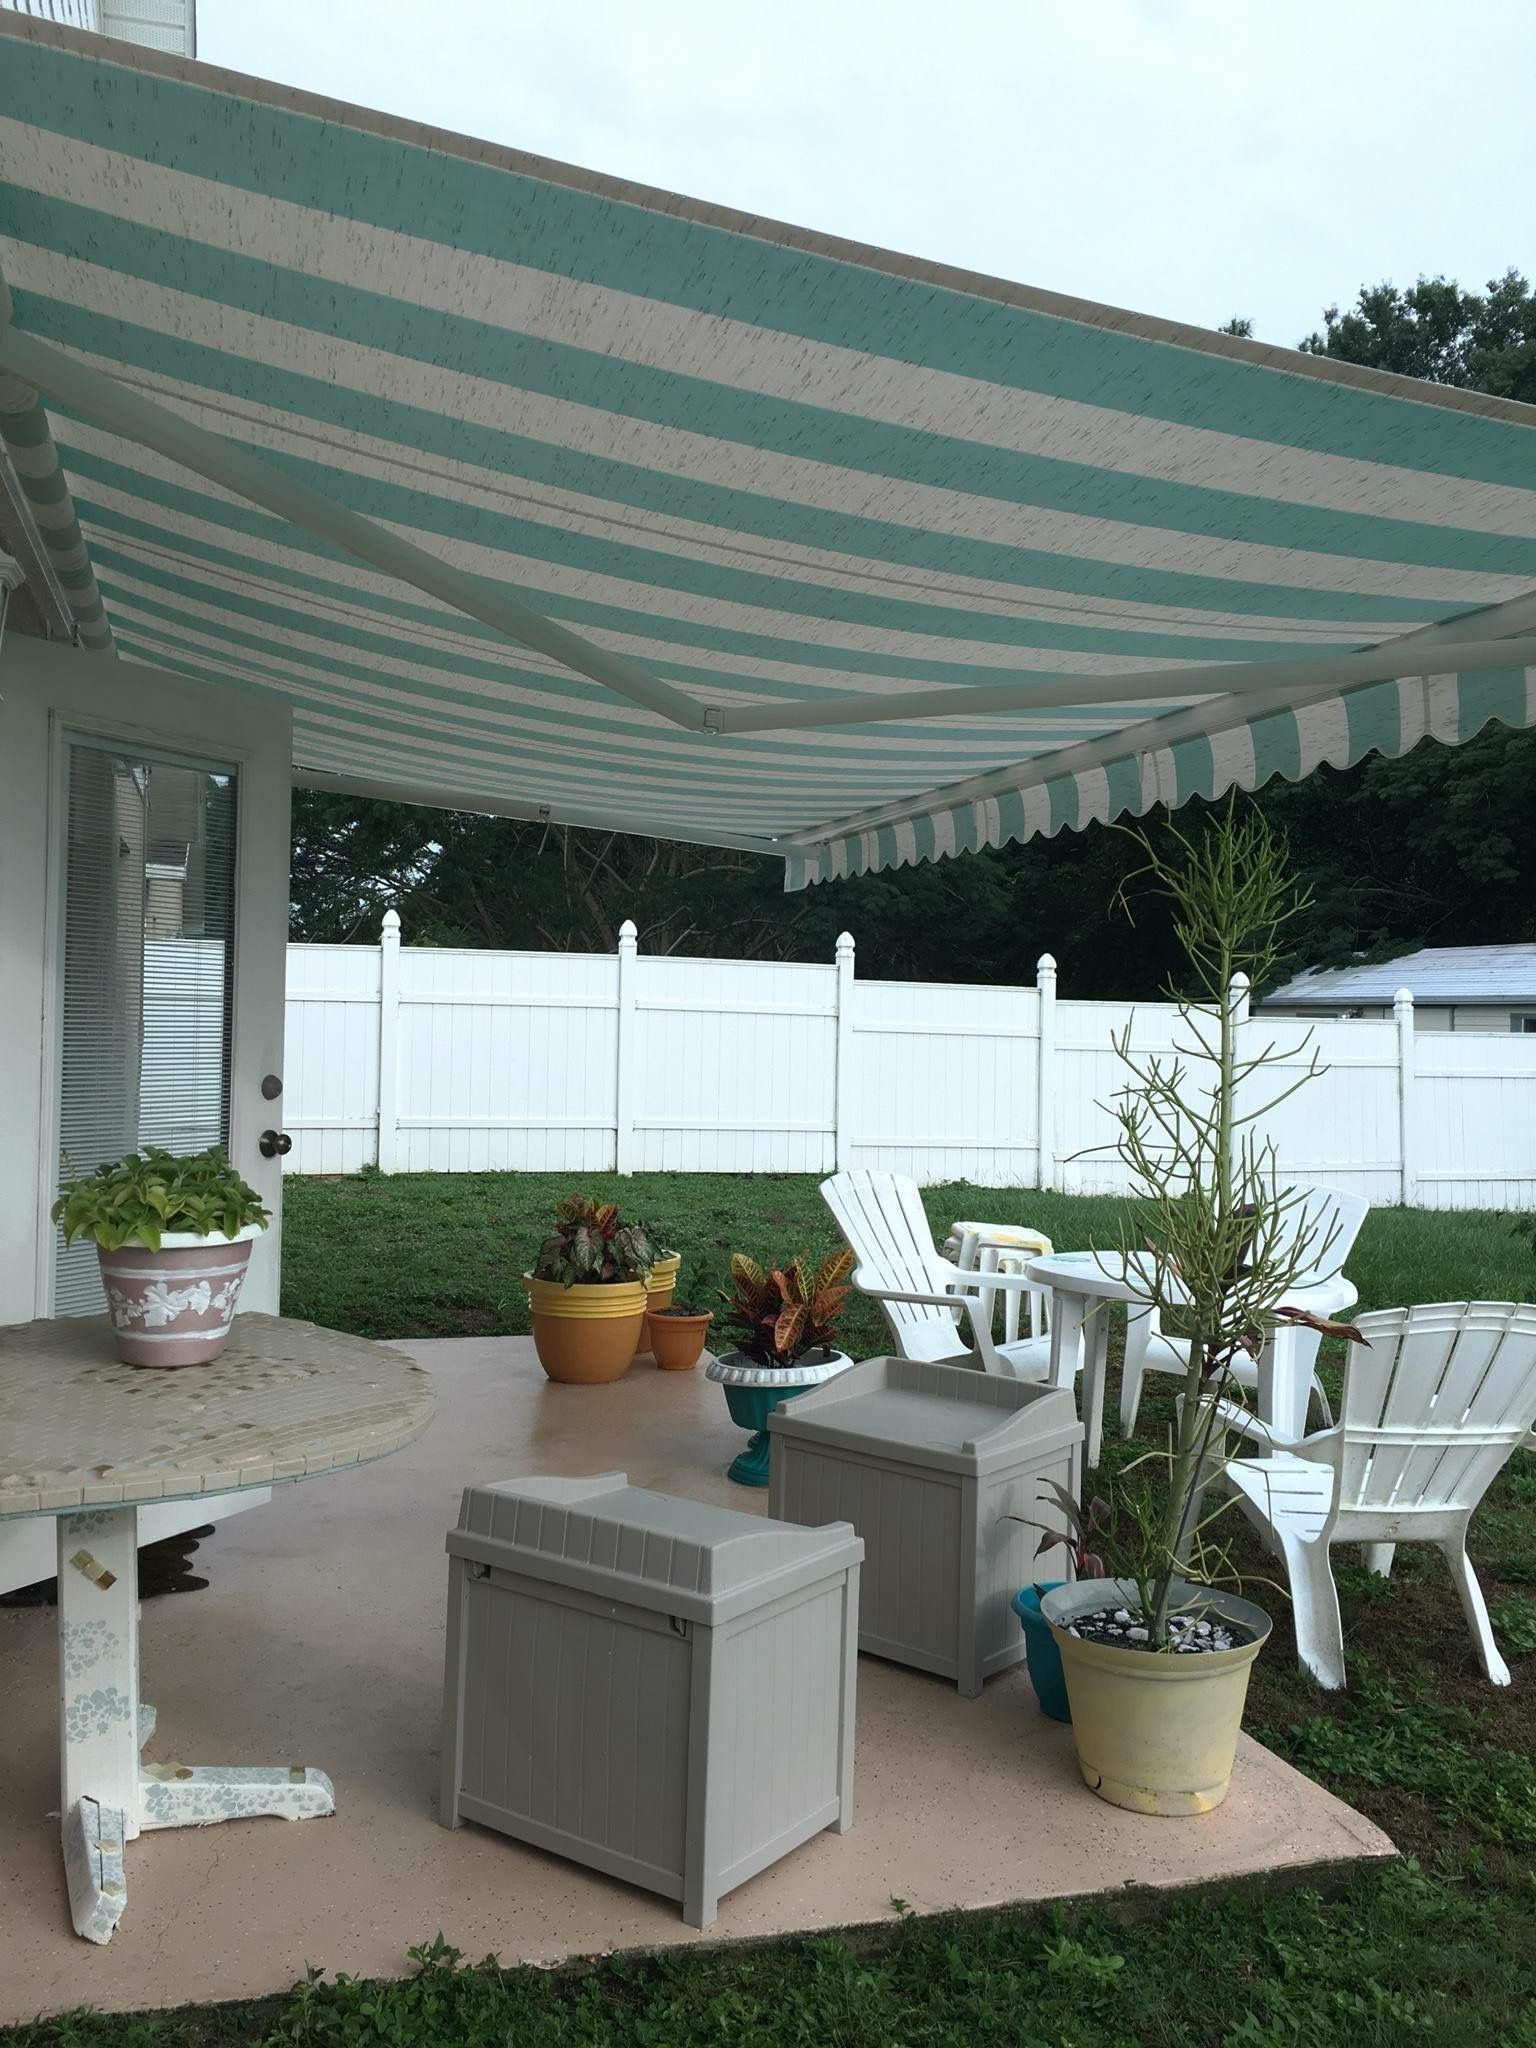 carport outdoor awning decks full for size sun shop canopy carports of awnings patio ideas shades backyard